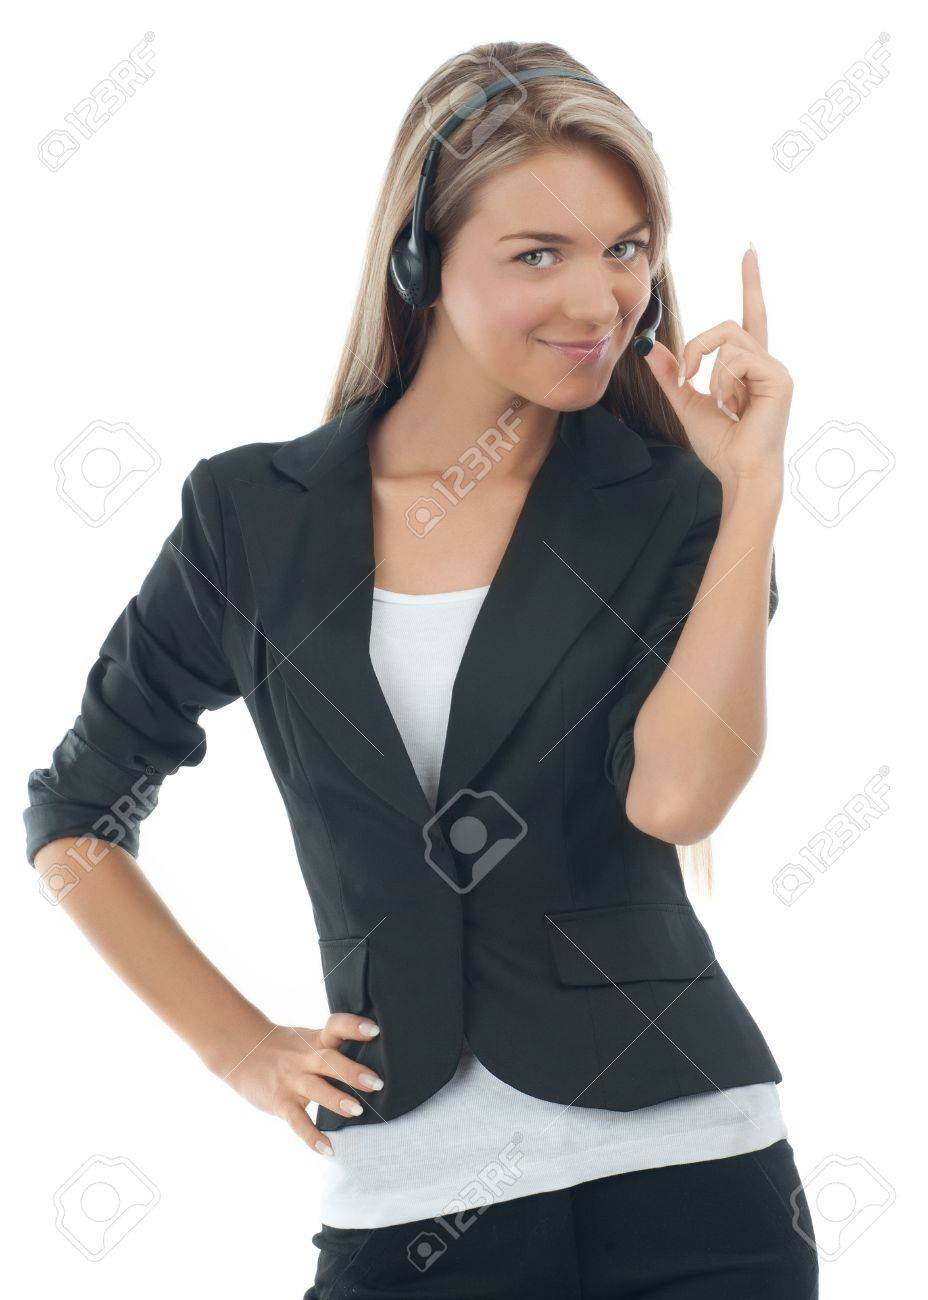 Portrait of a pretty young female call center employee wearing a headset with finger pointing up, against white background Stock Photo - 10827830